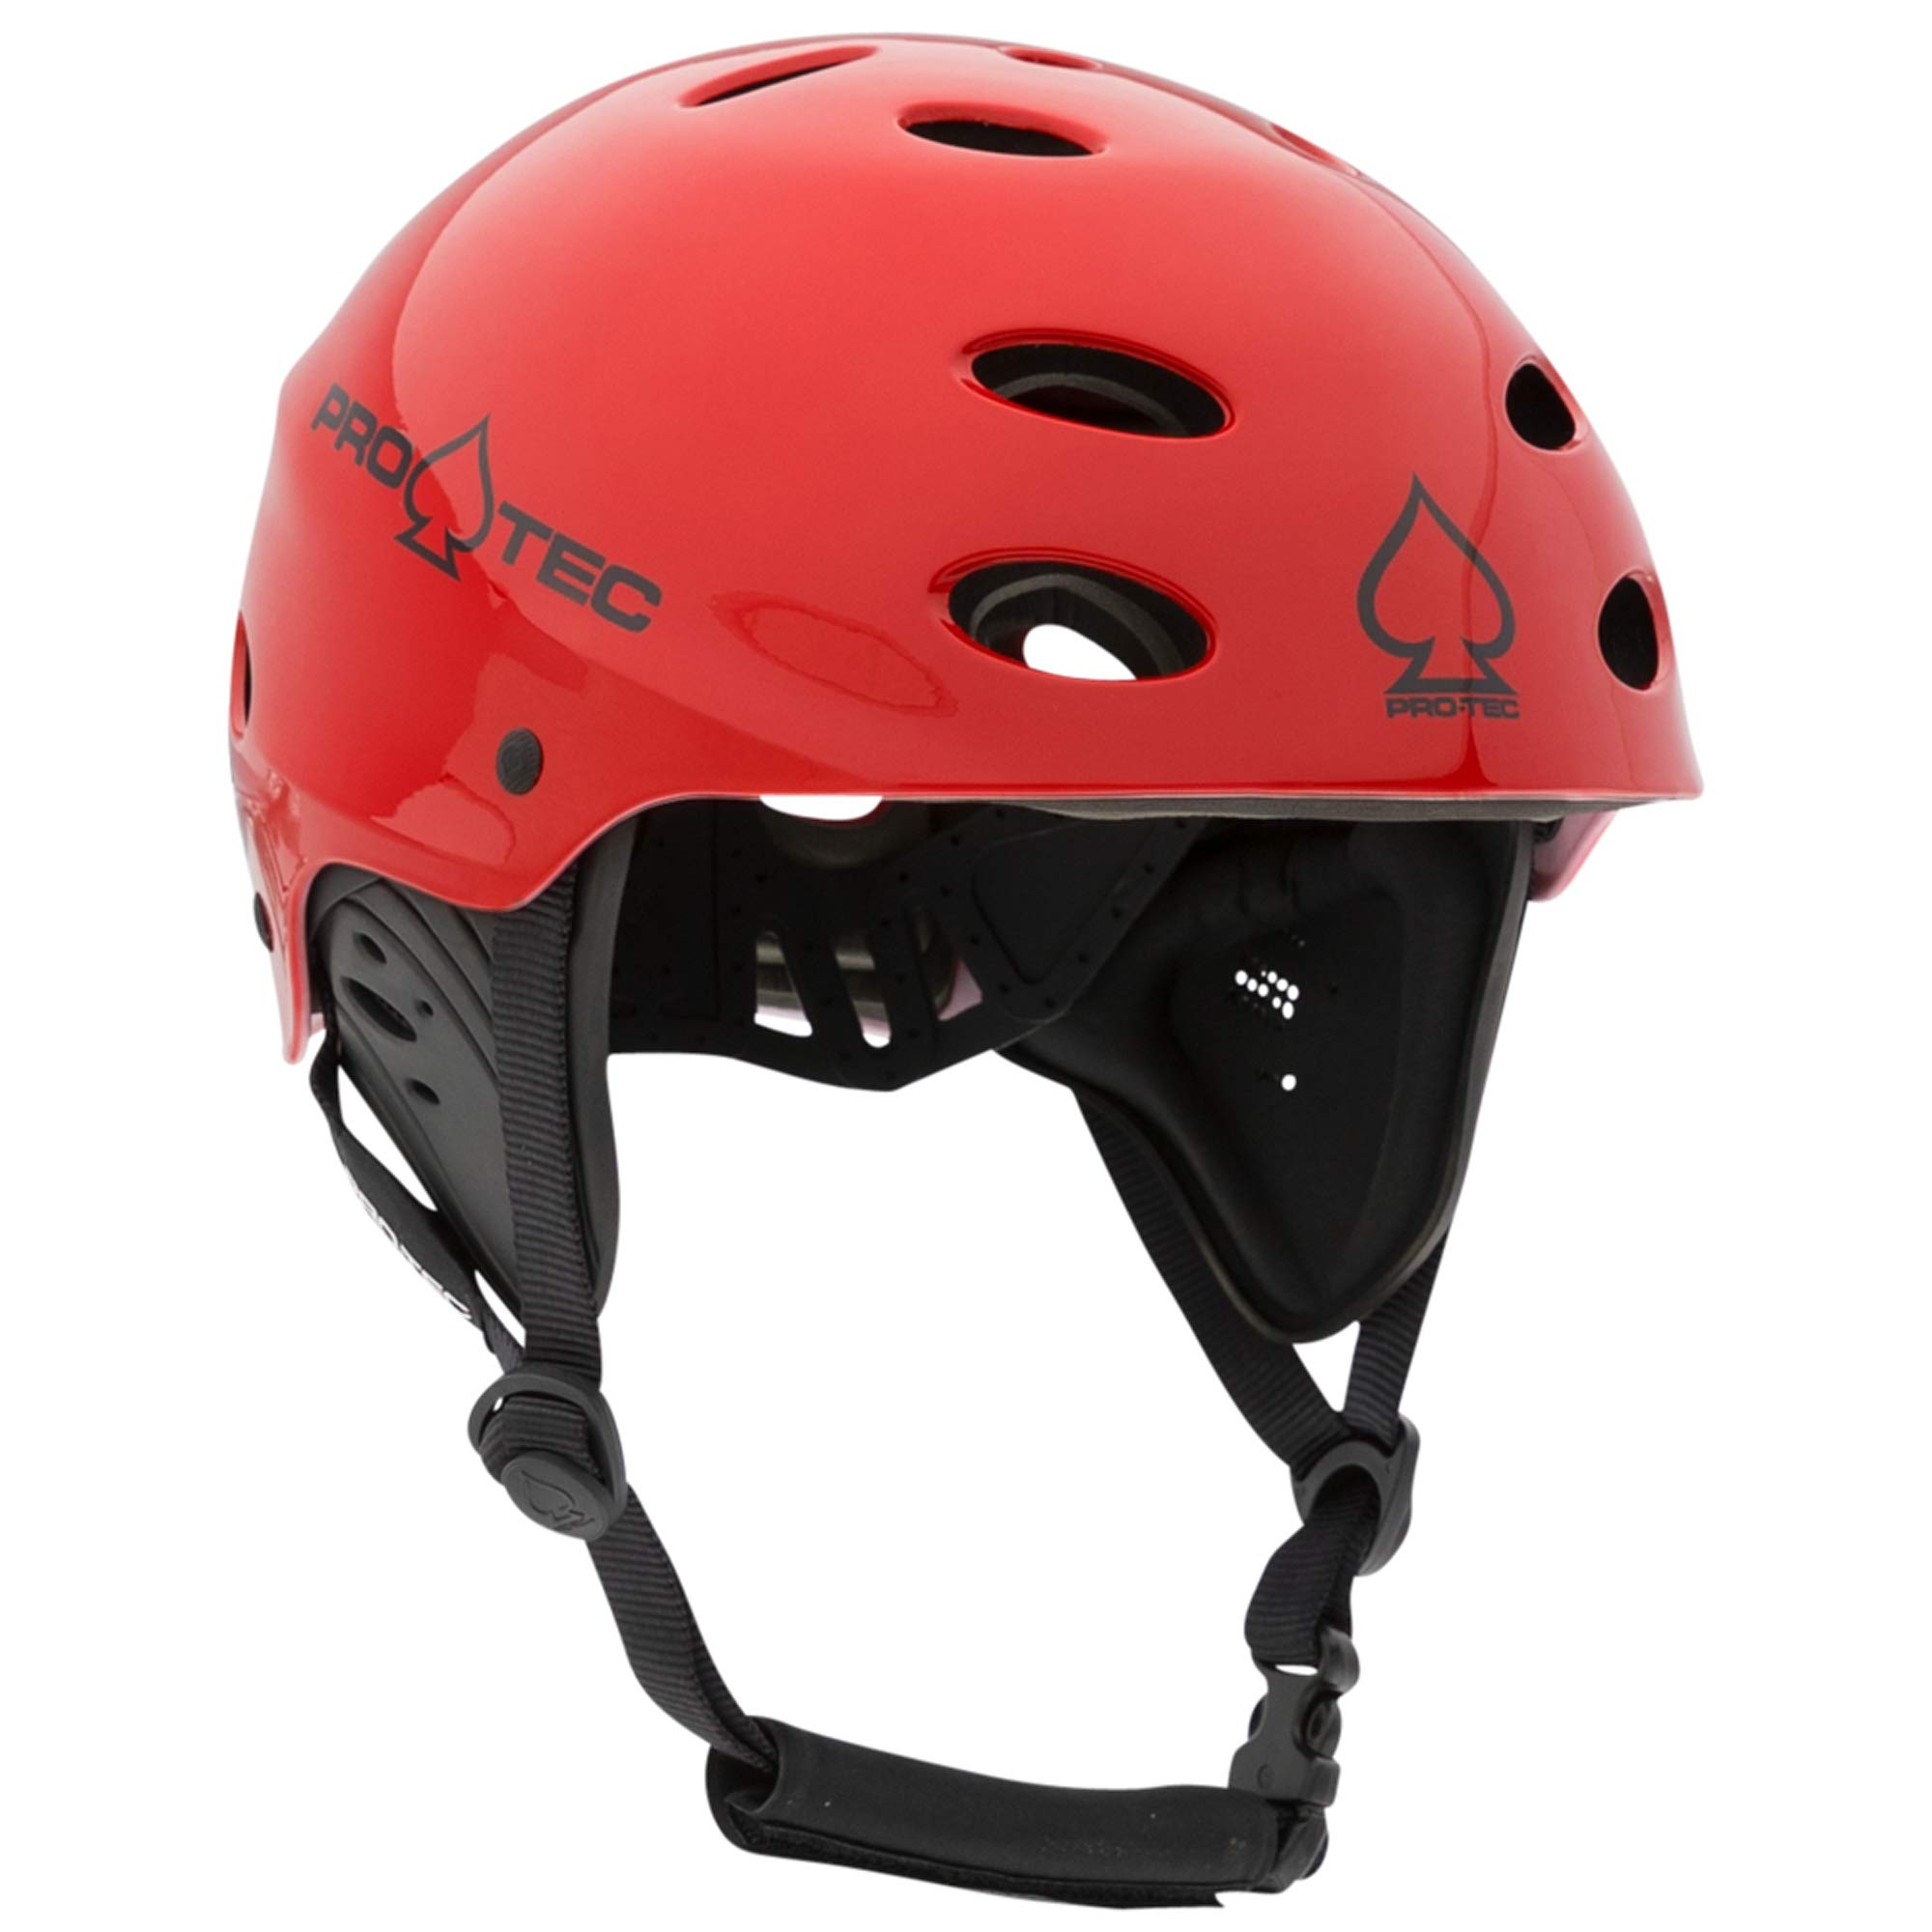 Pro-Tec Ace Wake Helmet, Gloss Red, M by Pro-Tec